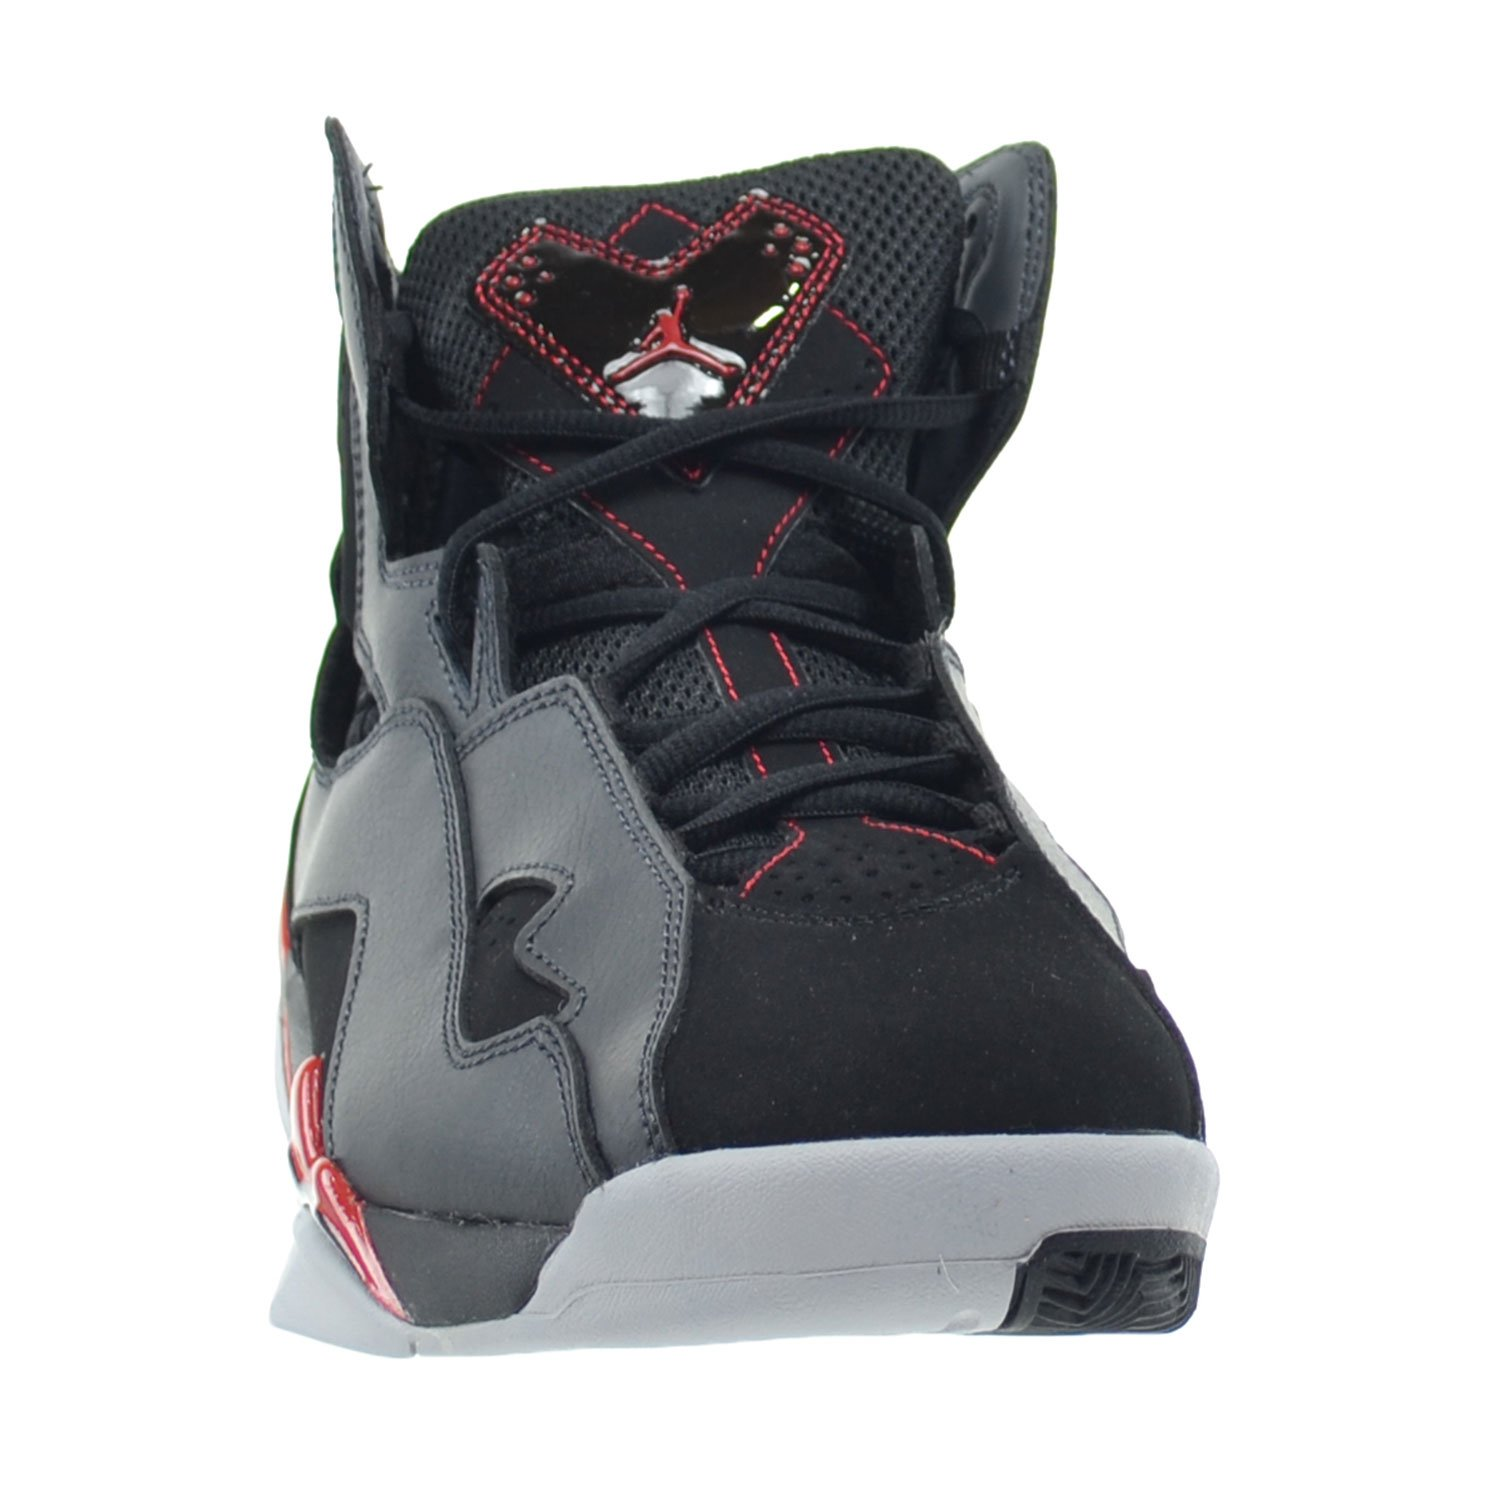 57262166a293 ... sweden jordan true flight mens shoes black gym red anthracite wolf grey  342964 002 leather and